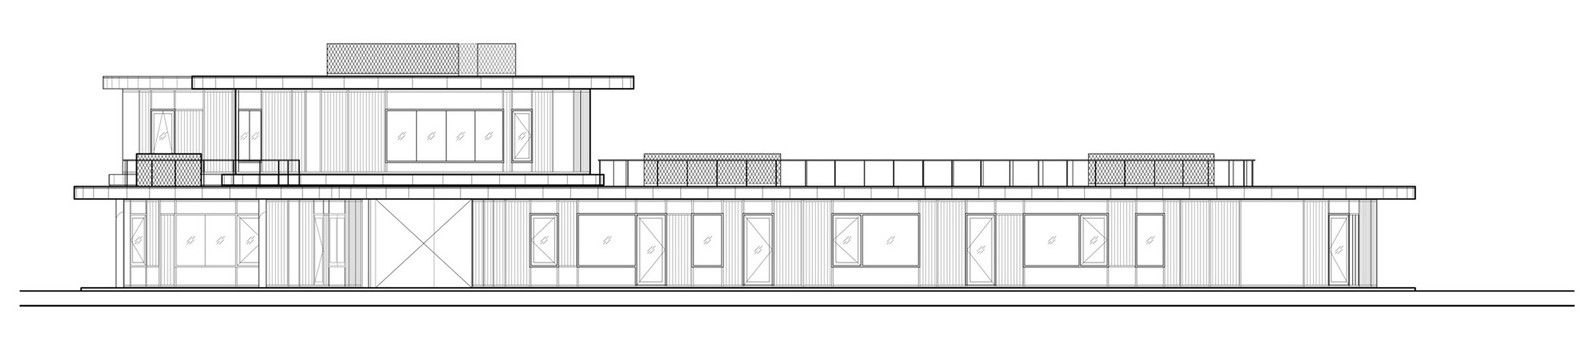 Gallery of Kensington International Kindergarten / Plan Architect - 31